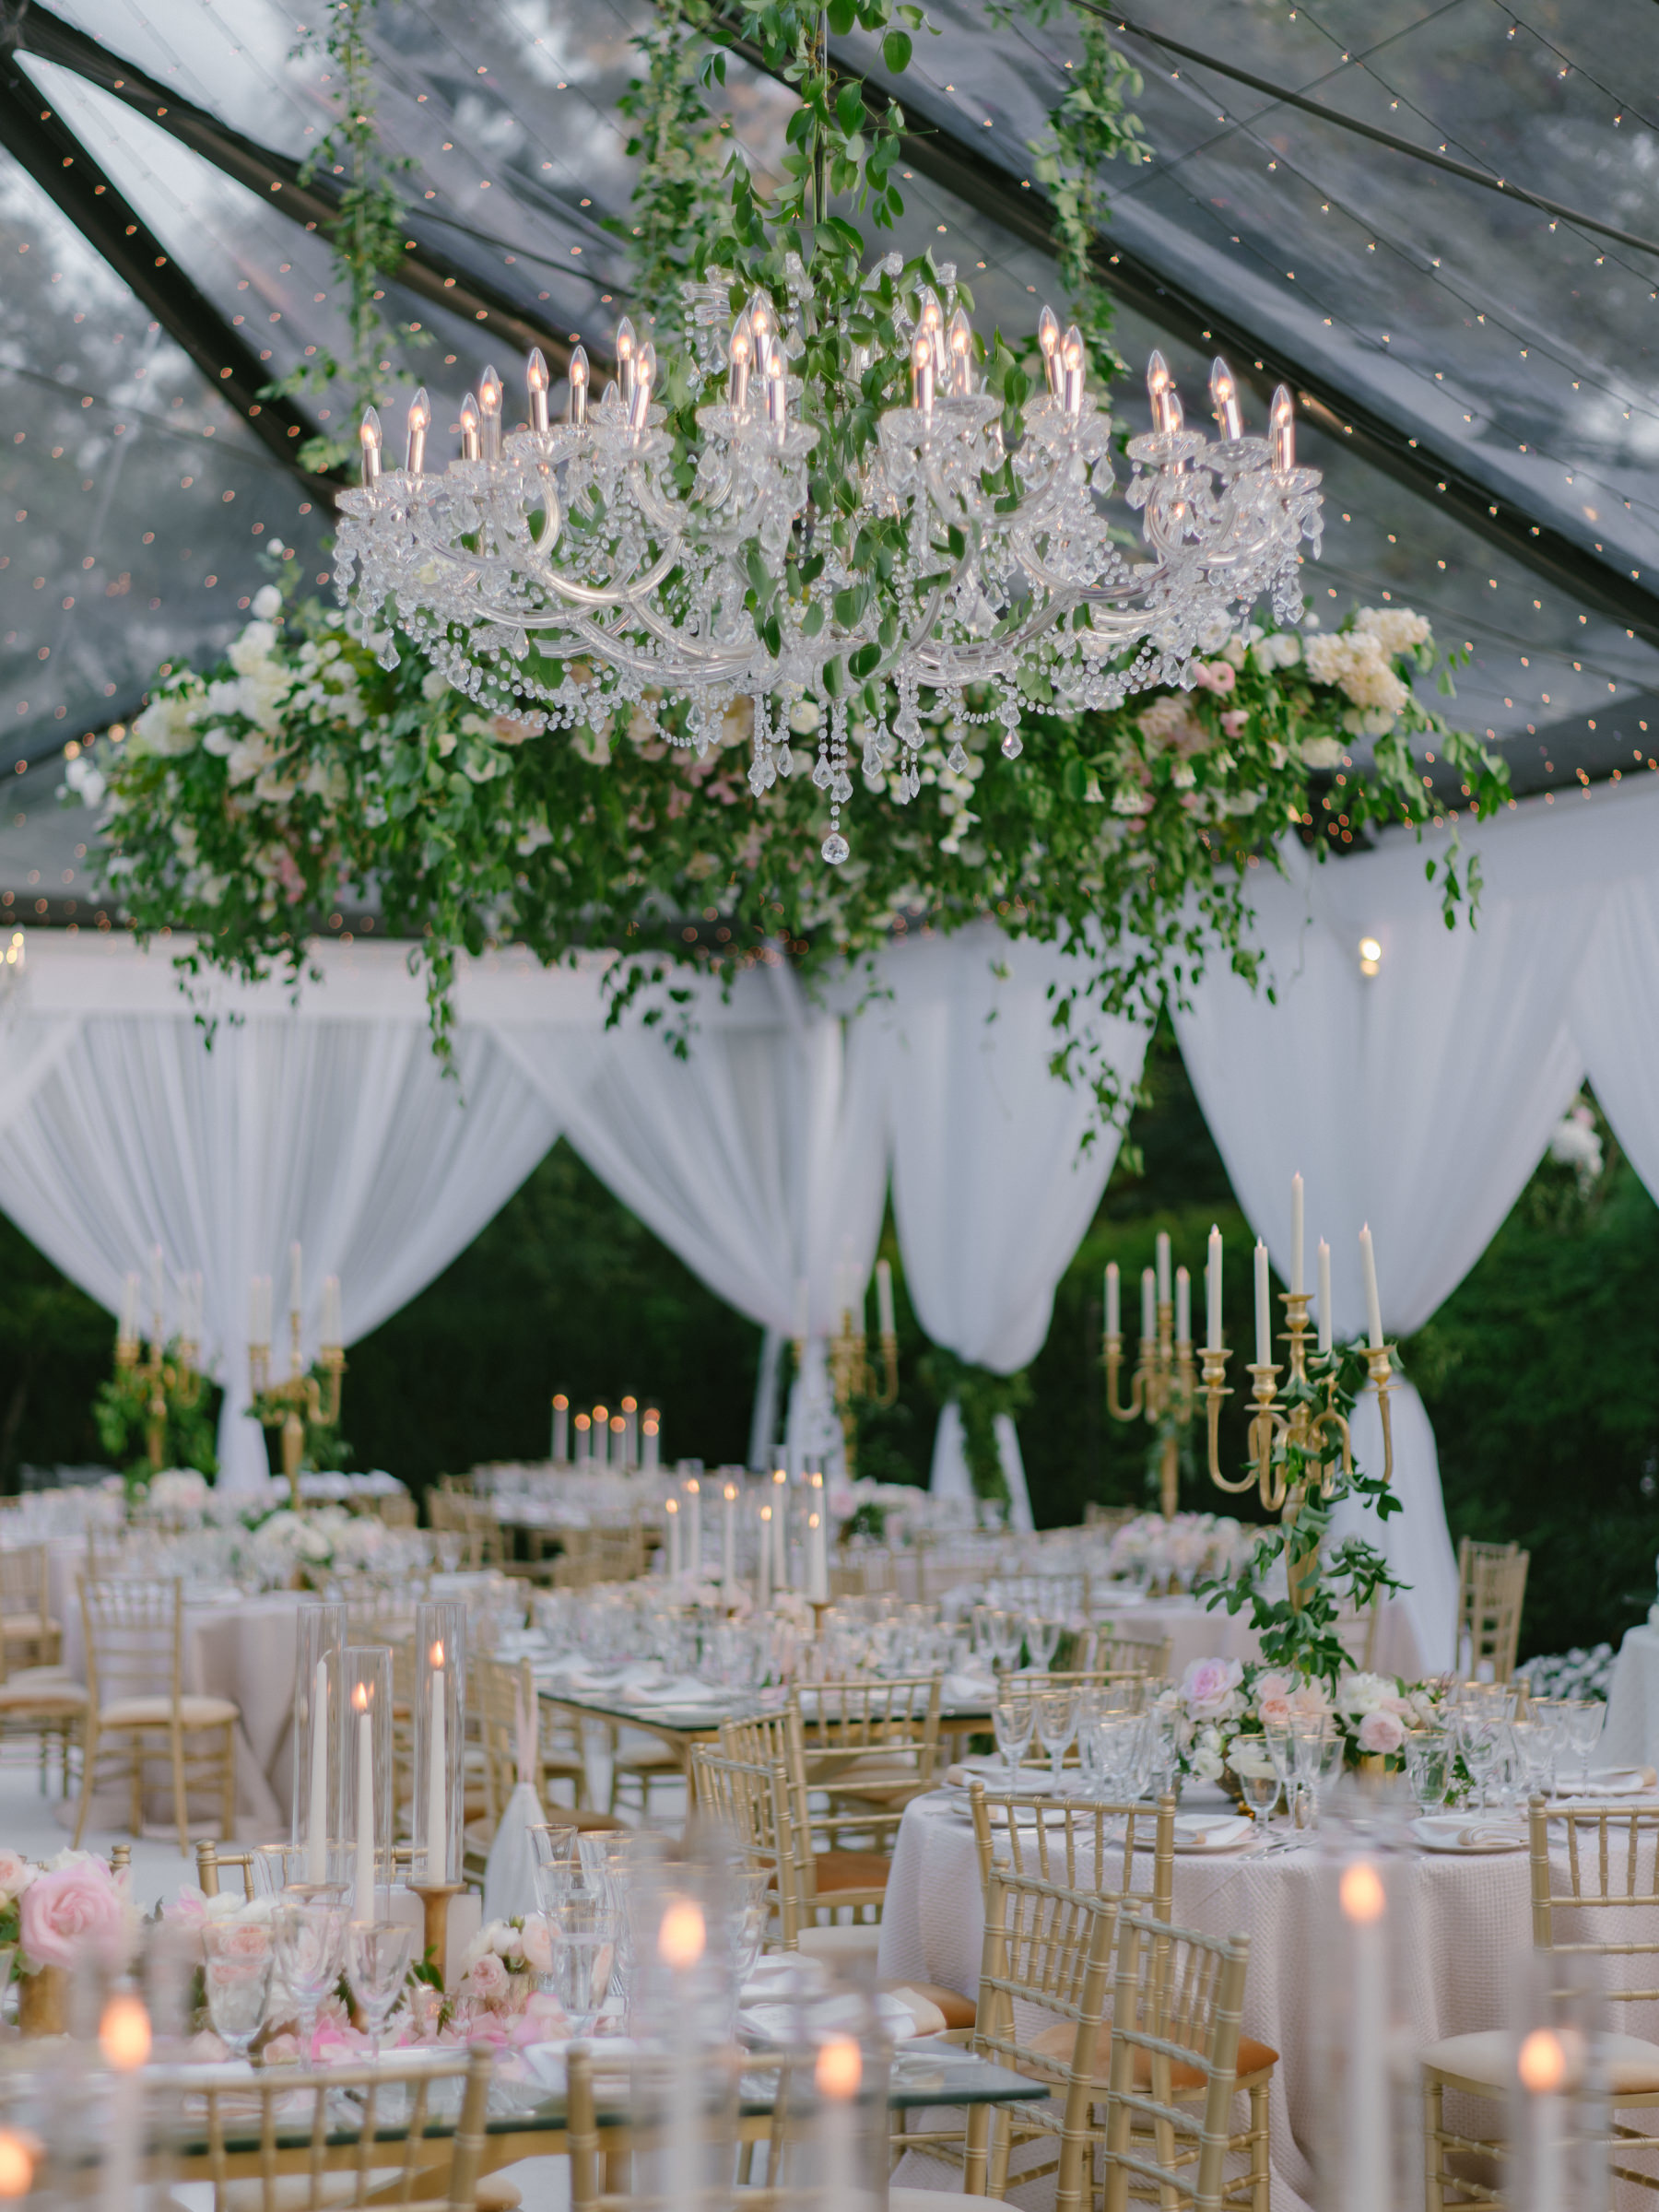 Pink and white reception decor with chandeliers and candlelight - photo by Amy and Stuart Photography